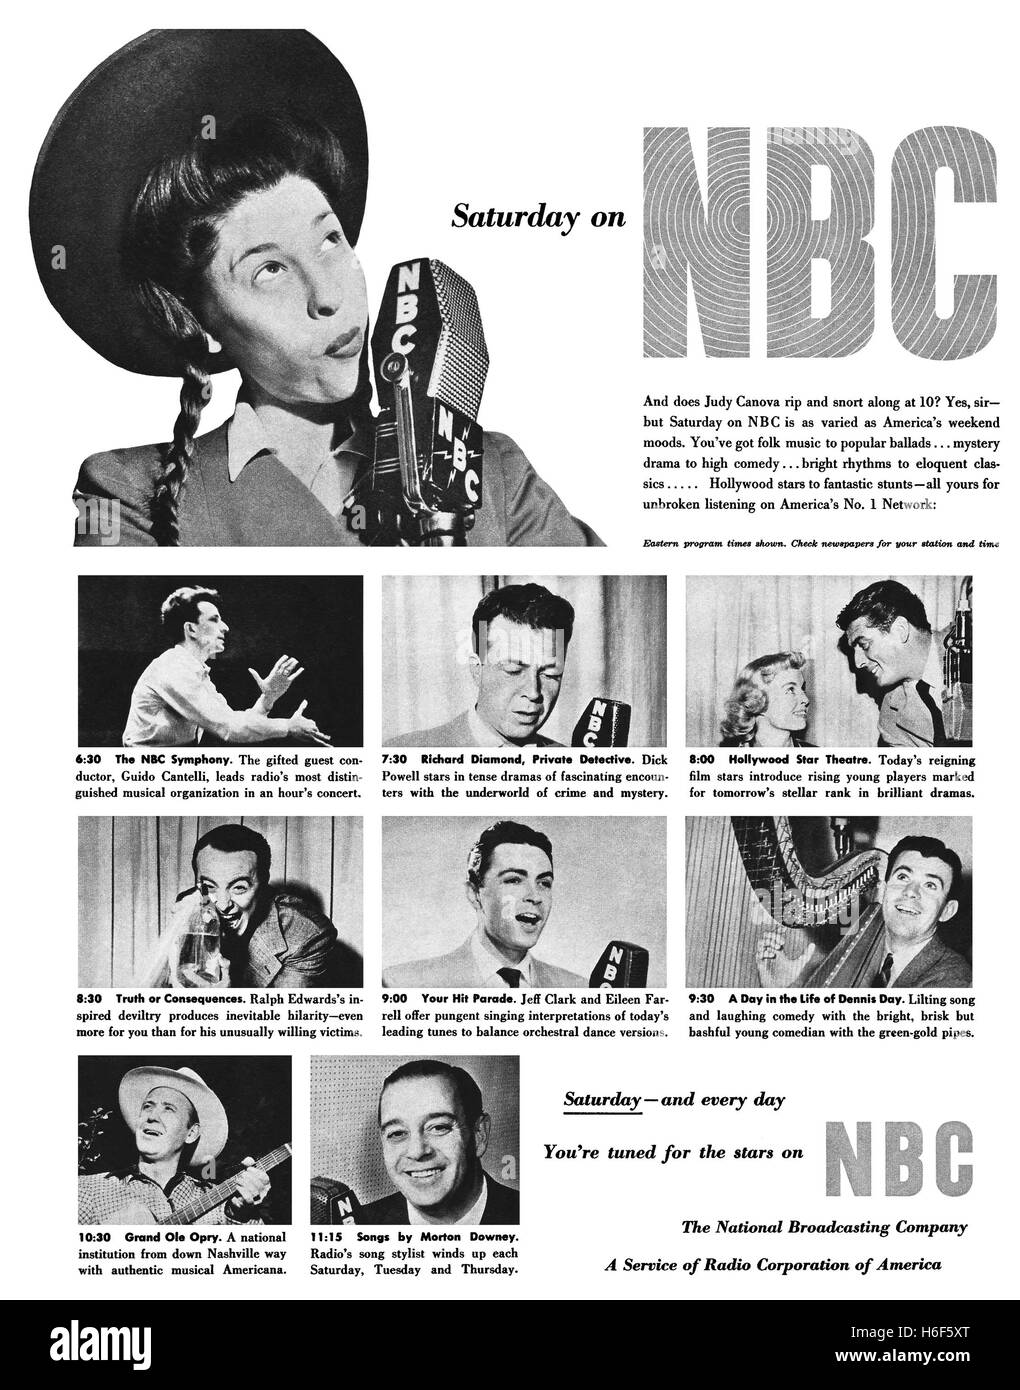 1950 U.S. advertisement for N.B.C. Television - Stock Image